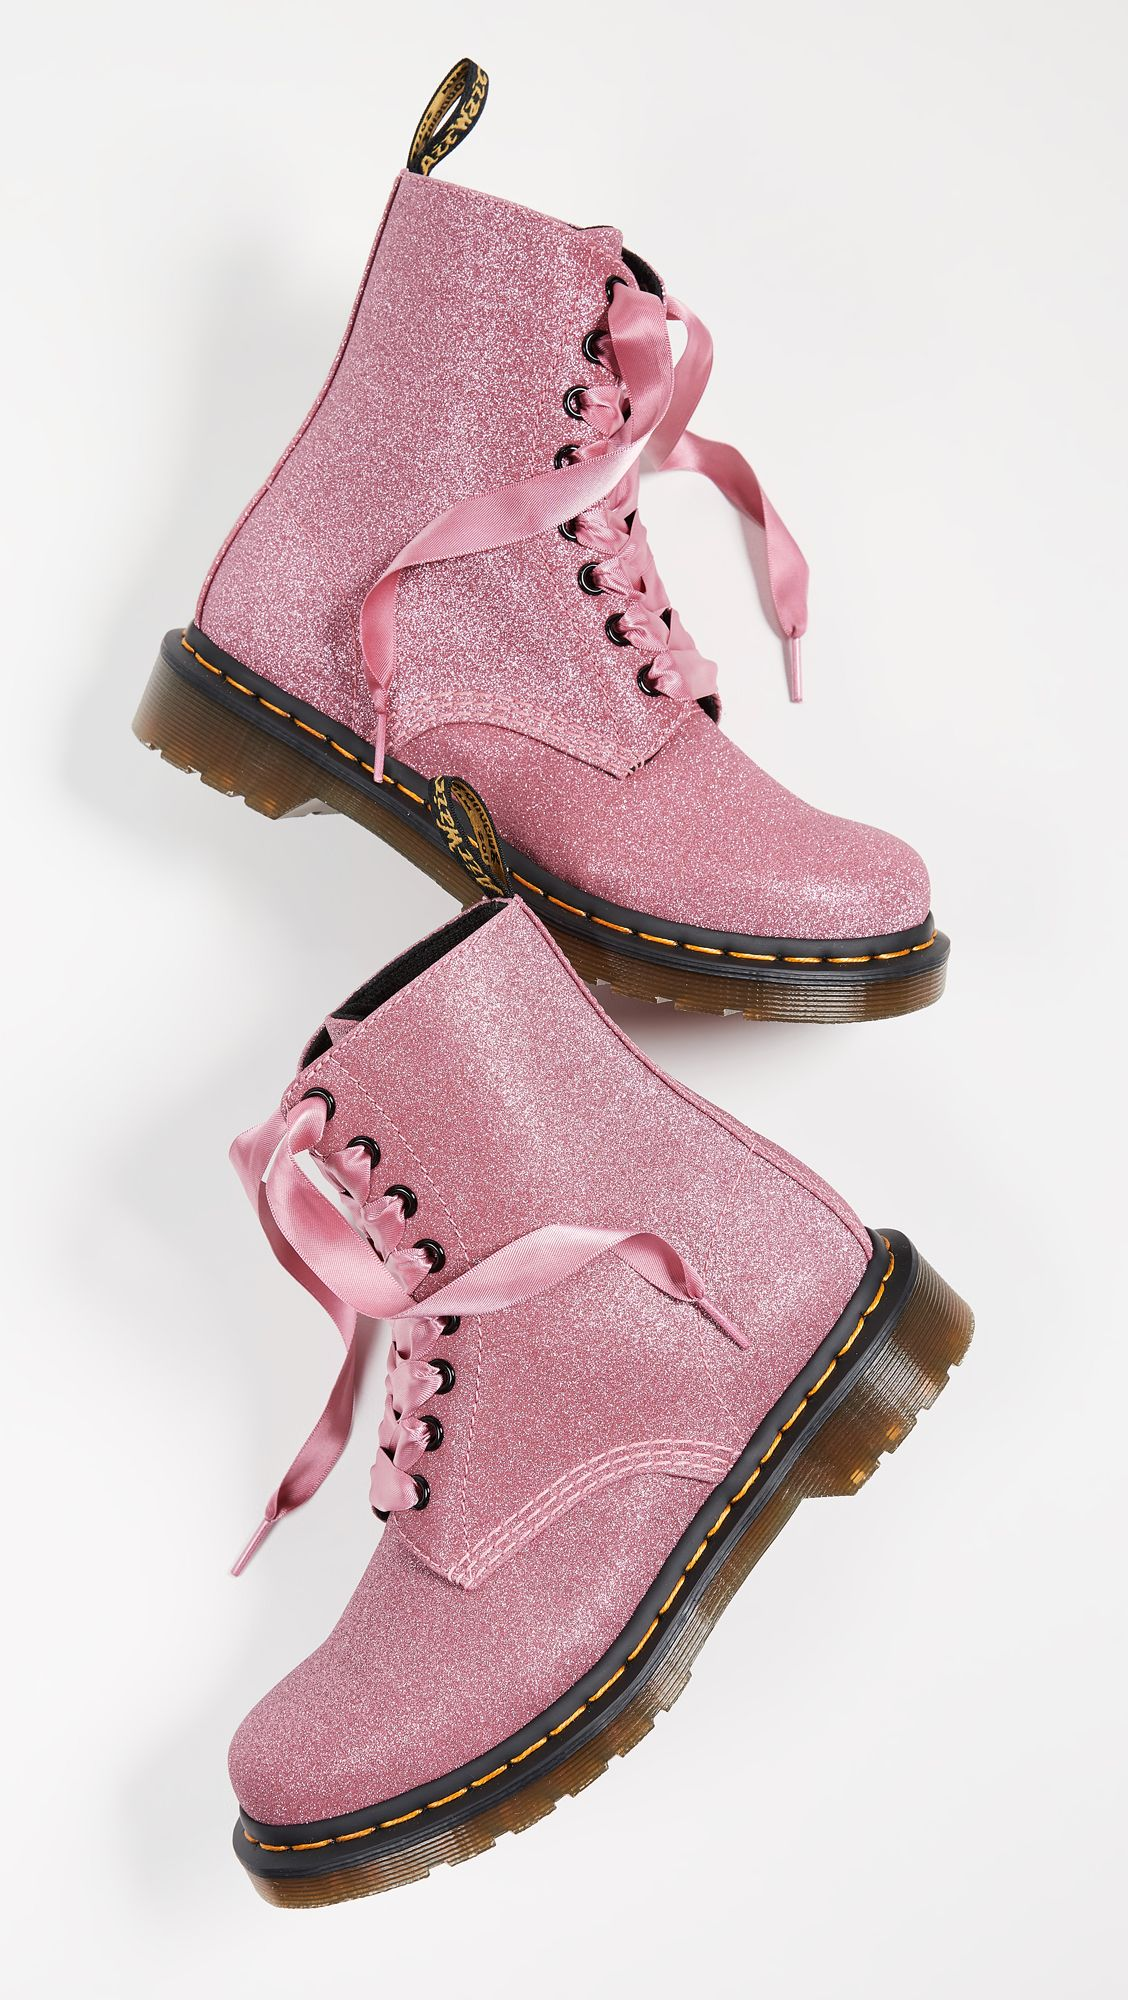 Dr Martens 1460 Pascal Glitter 8 Eye Boots Boots Lace Boots Combat Boots